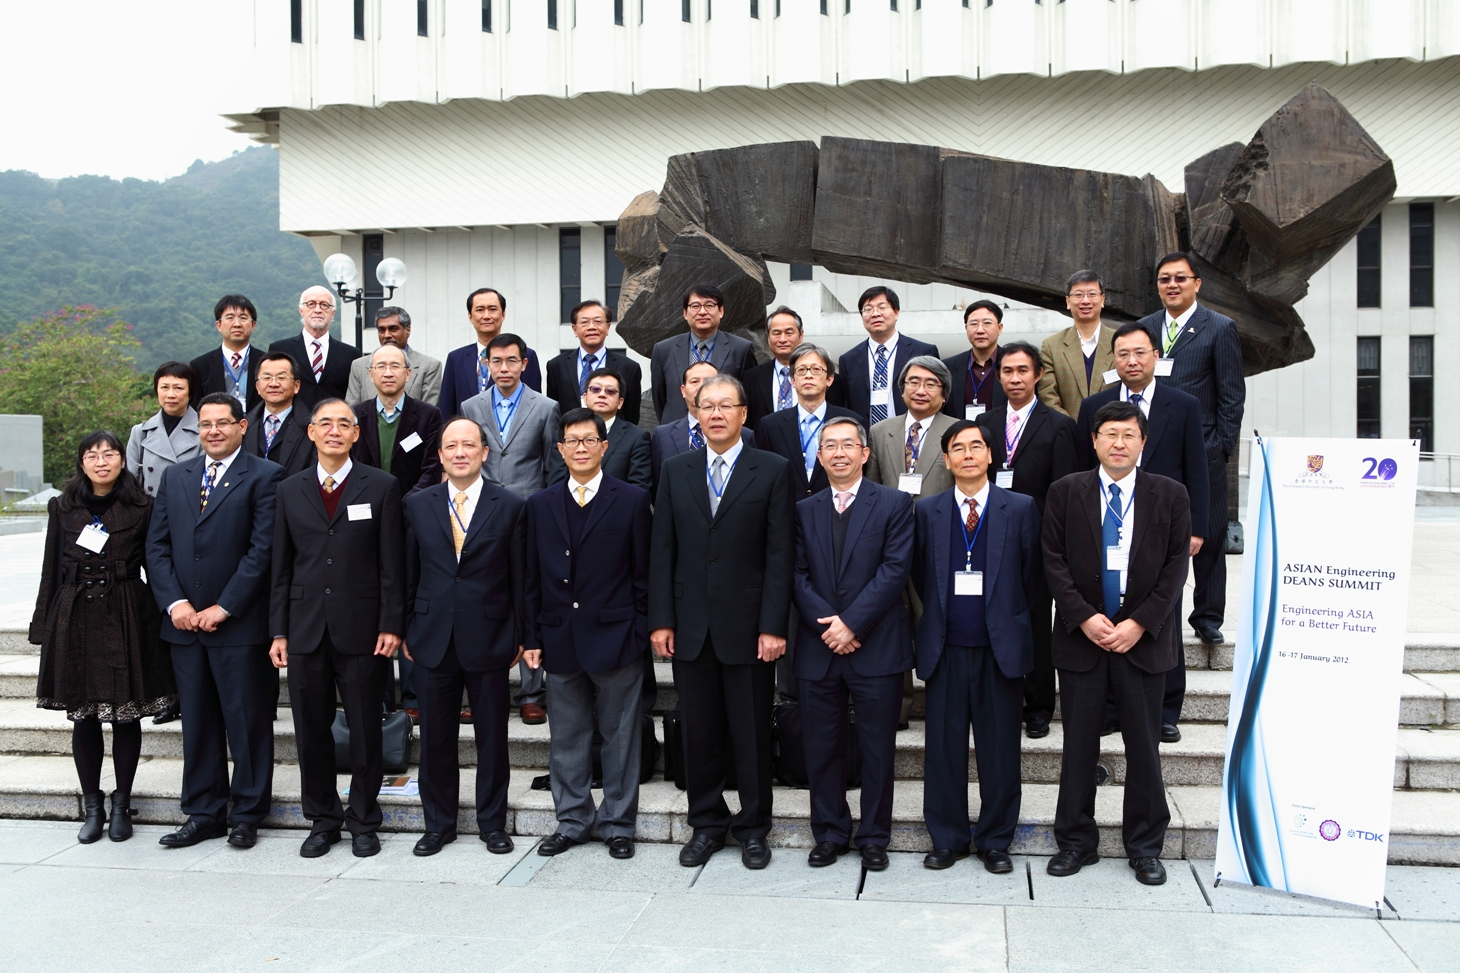 Over 20 Asian Deans of Engineering attend the summit.